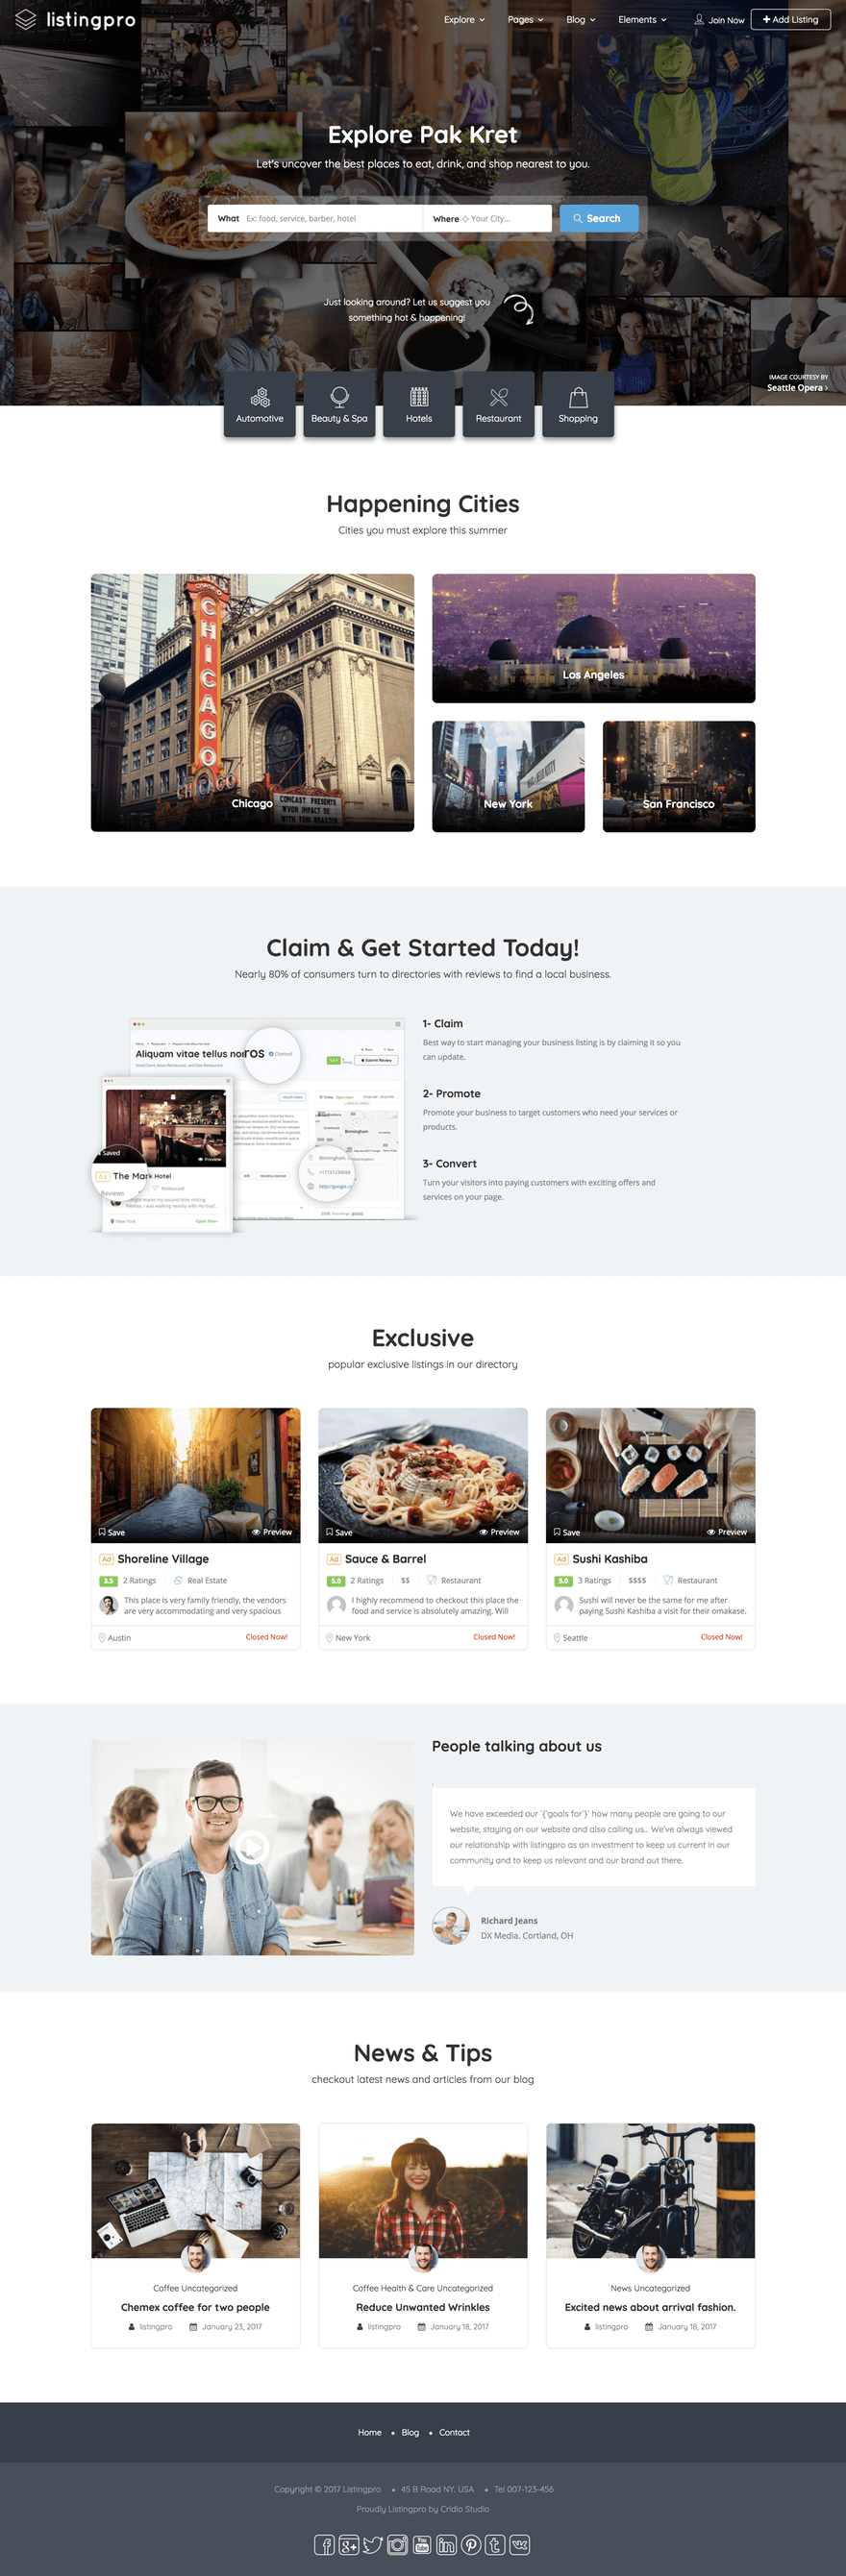 listing-pro-wordpress-theme